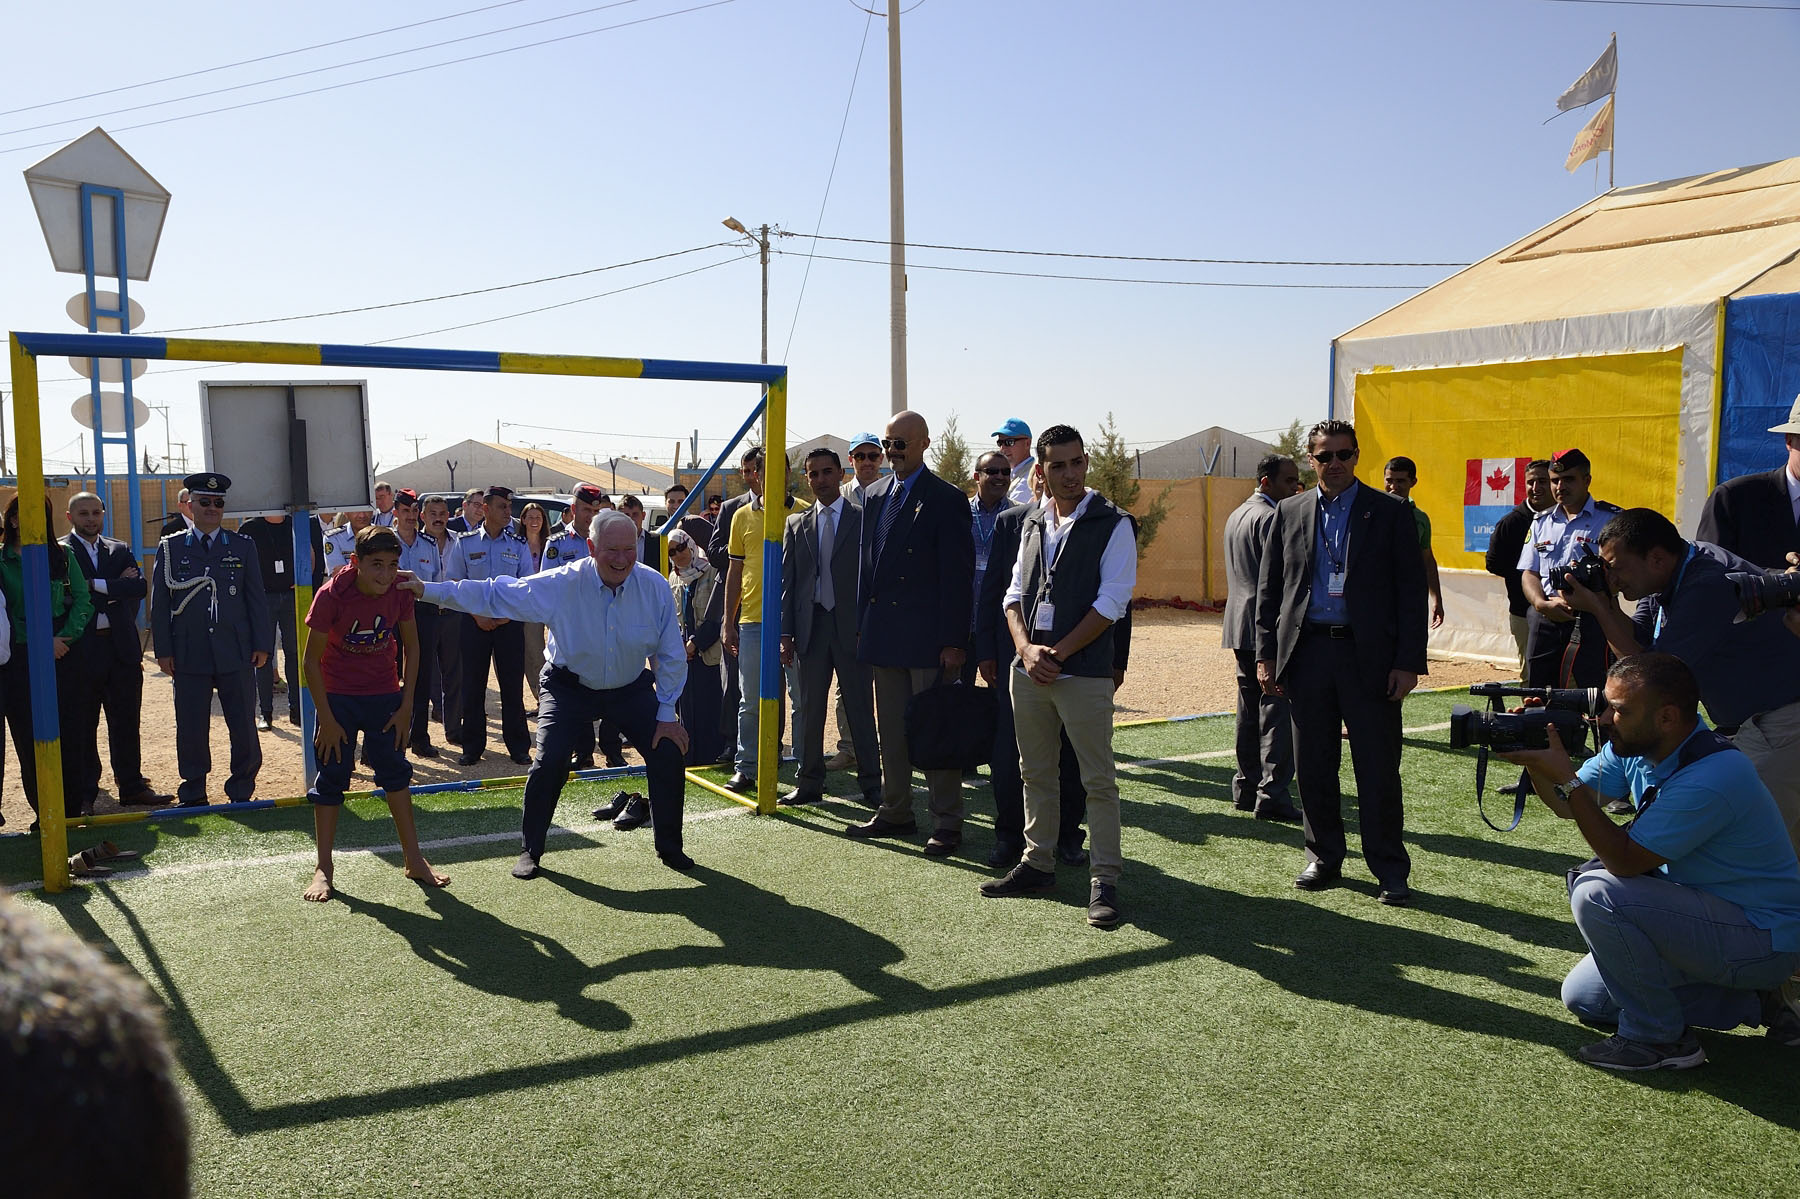 On the second day of their State visit to Jordan, Their Excellencies and the Canadian delegation visited the Zaatari refugee camp, located close to the Syrian border, on October 30, 2016.